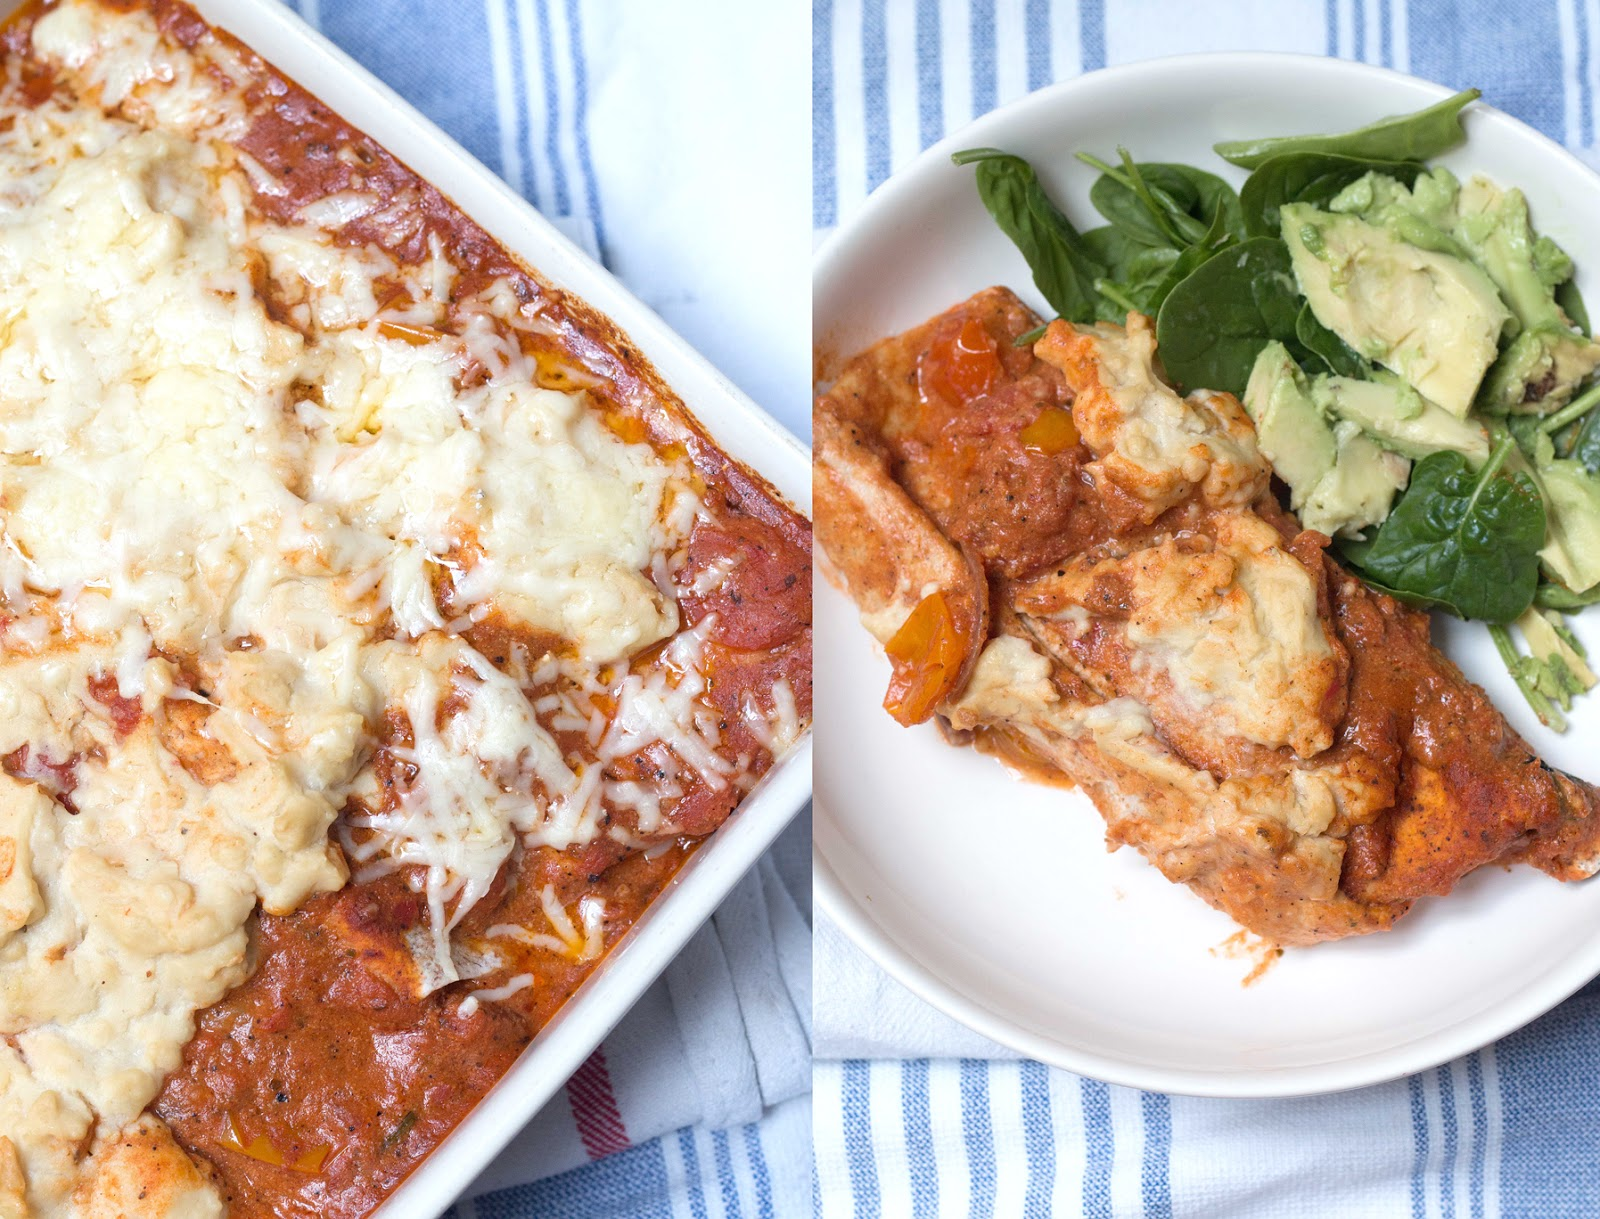 MOROCCAN HARISSA SWEET POTATO ENCHILADAS